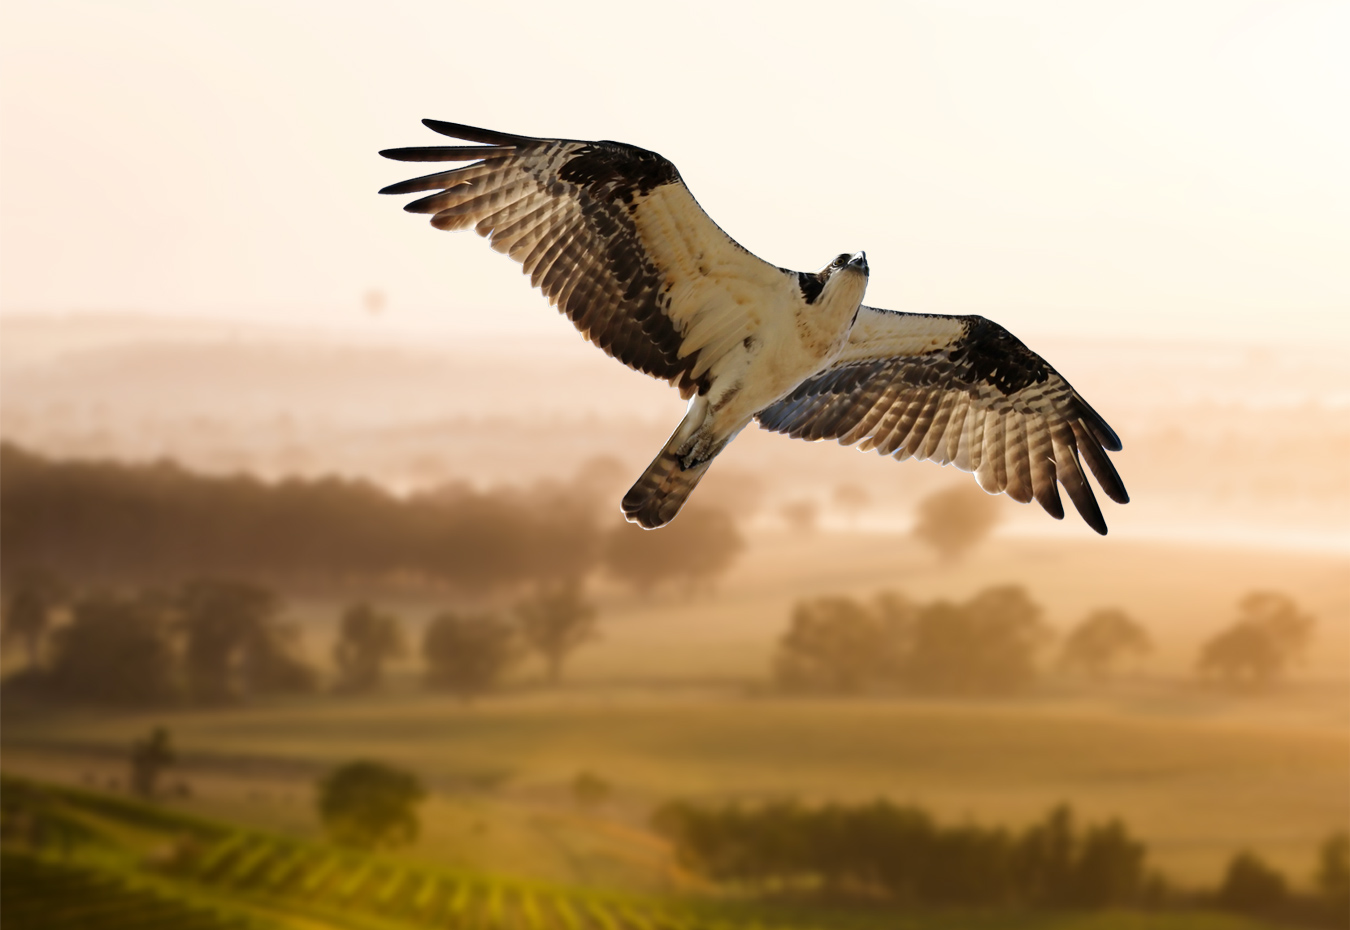 Falcon & Hawk Kites | Bird Control Products - Falcon Crop